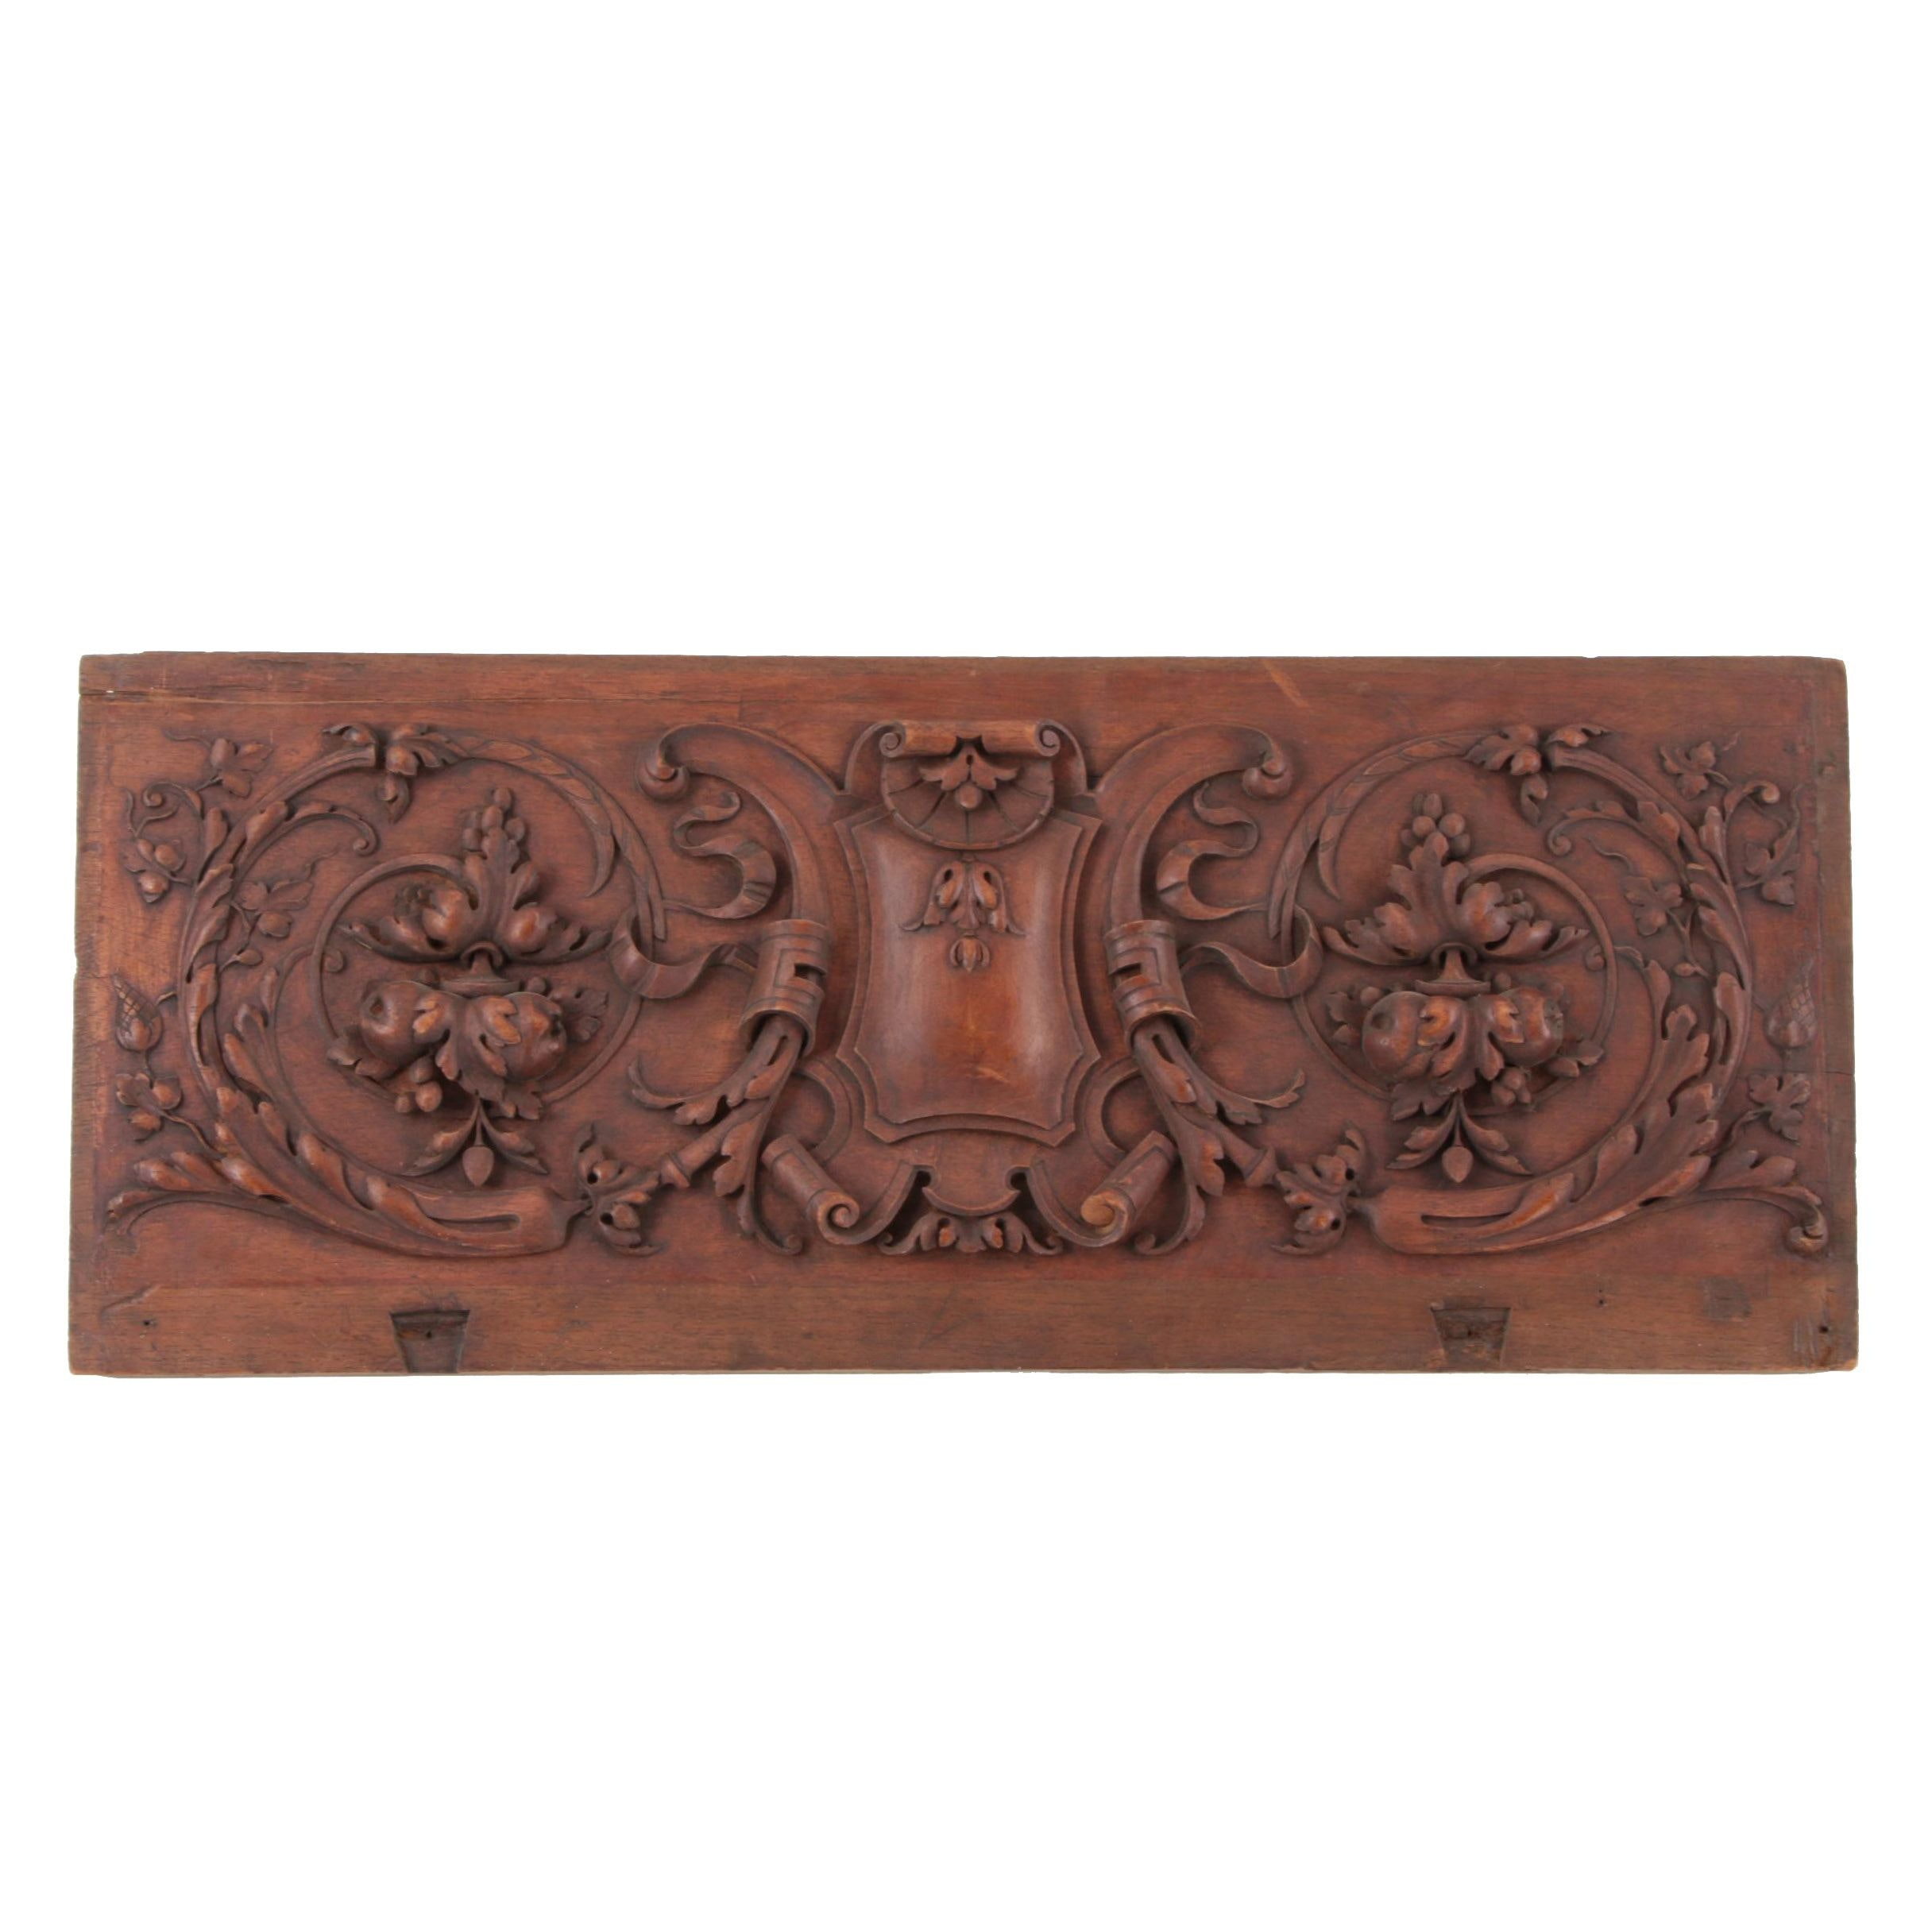 Victorian Renaissance Revival Relief-Carved Walnut Panel, Circa 1880